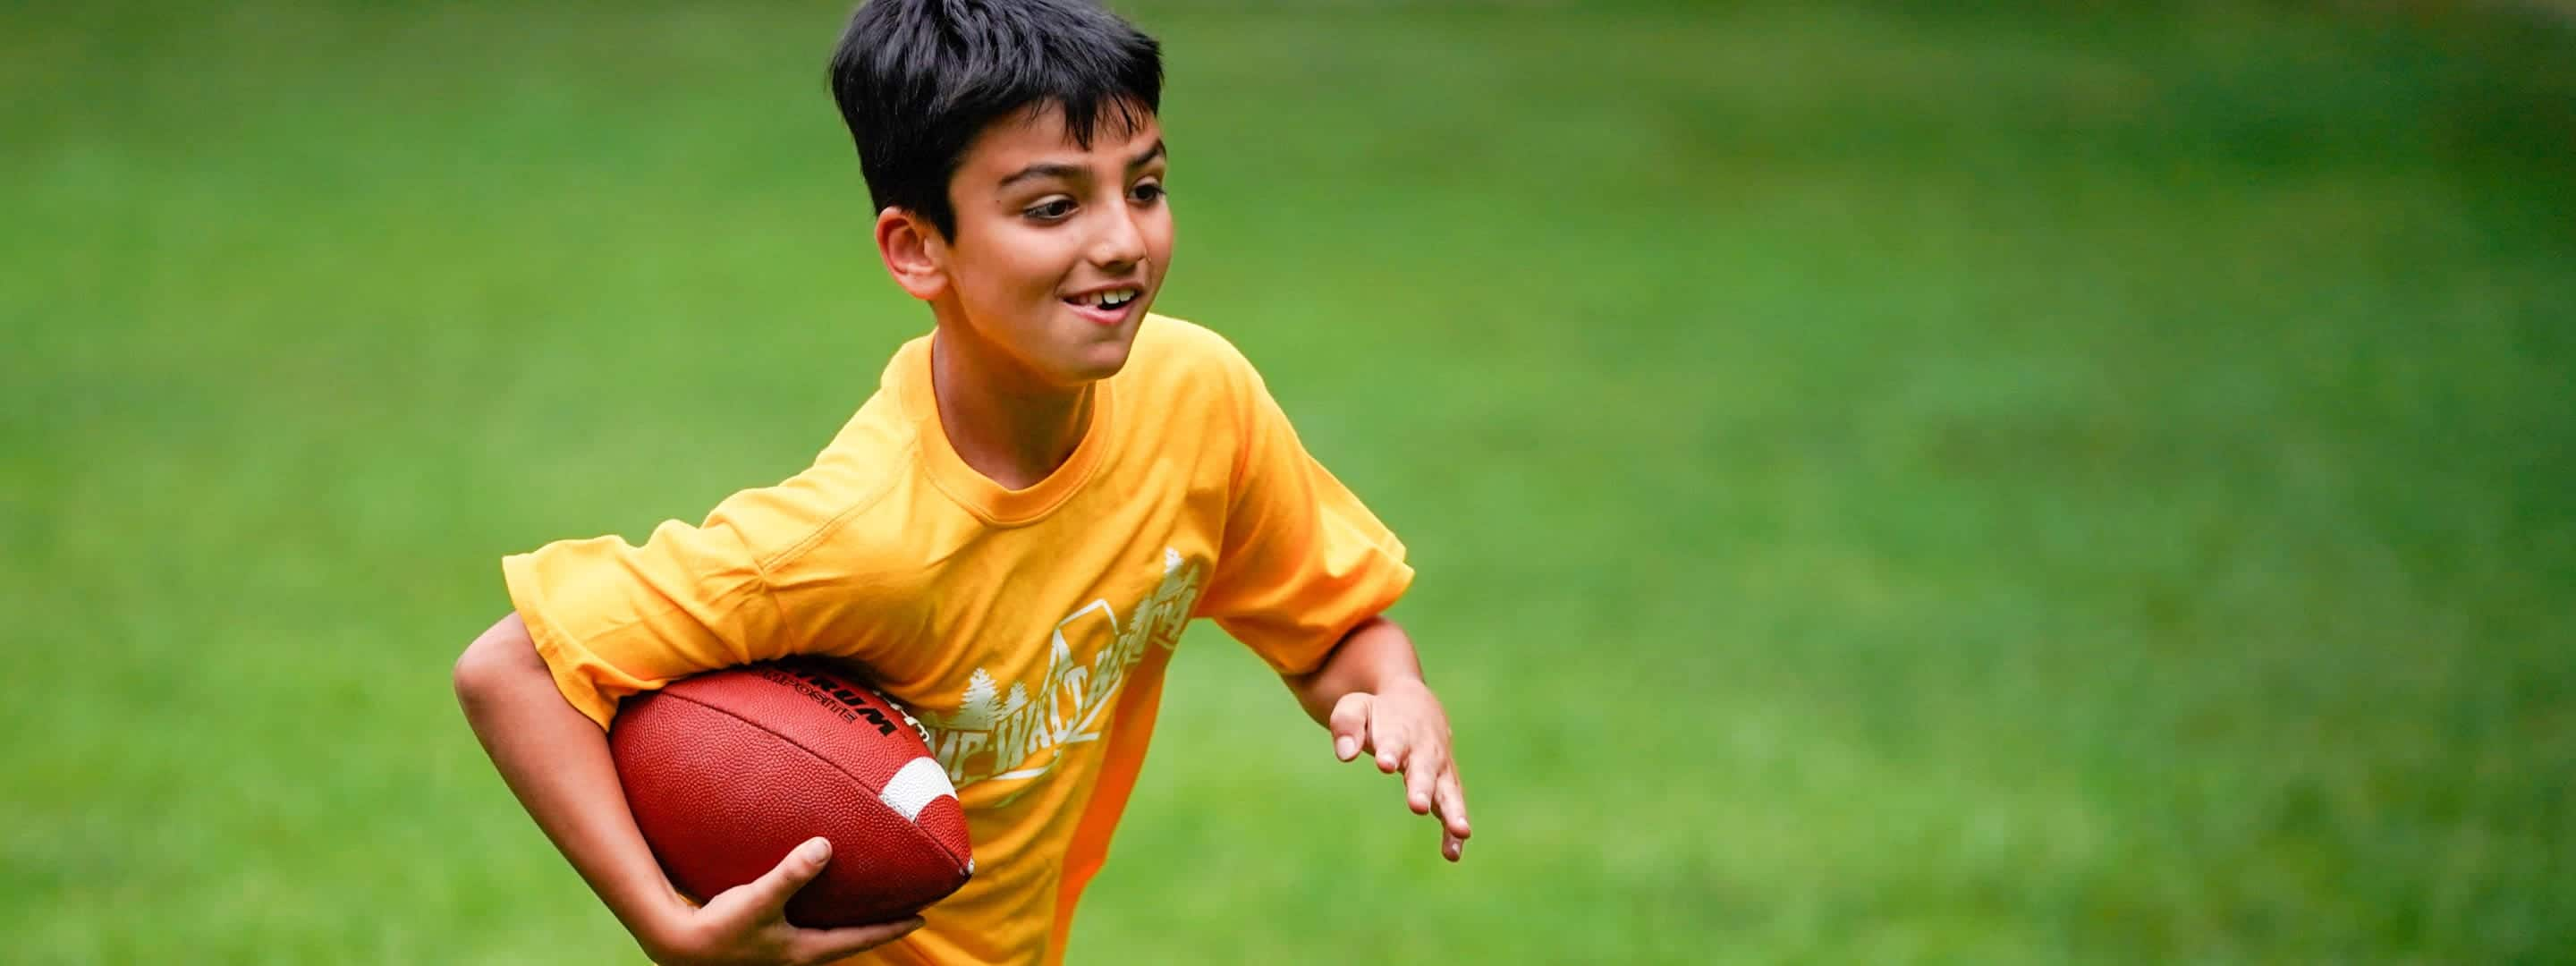 boy running with a football